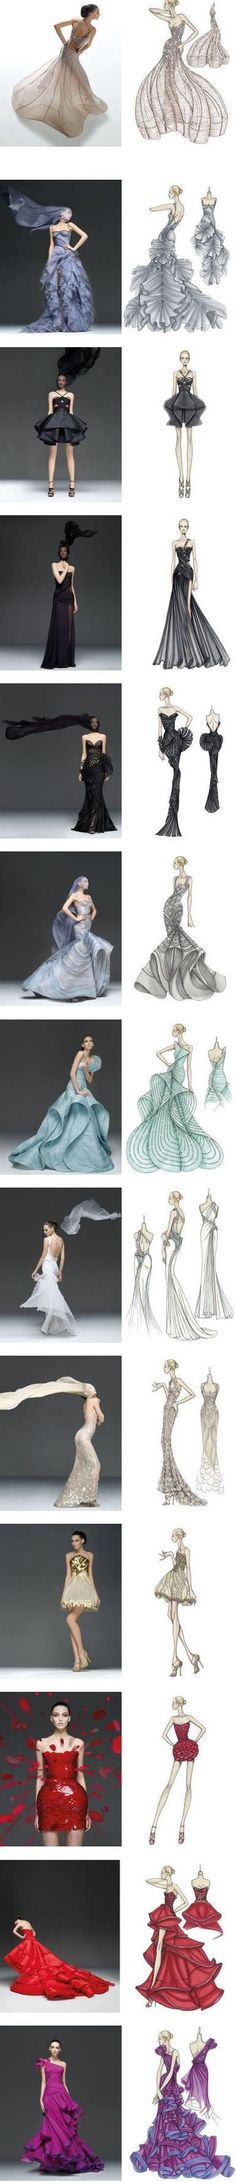 Dresses and their sketches - Atelier Versace